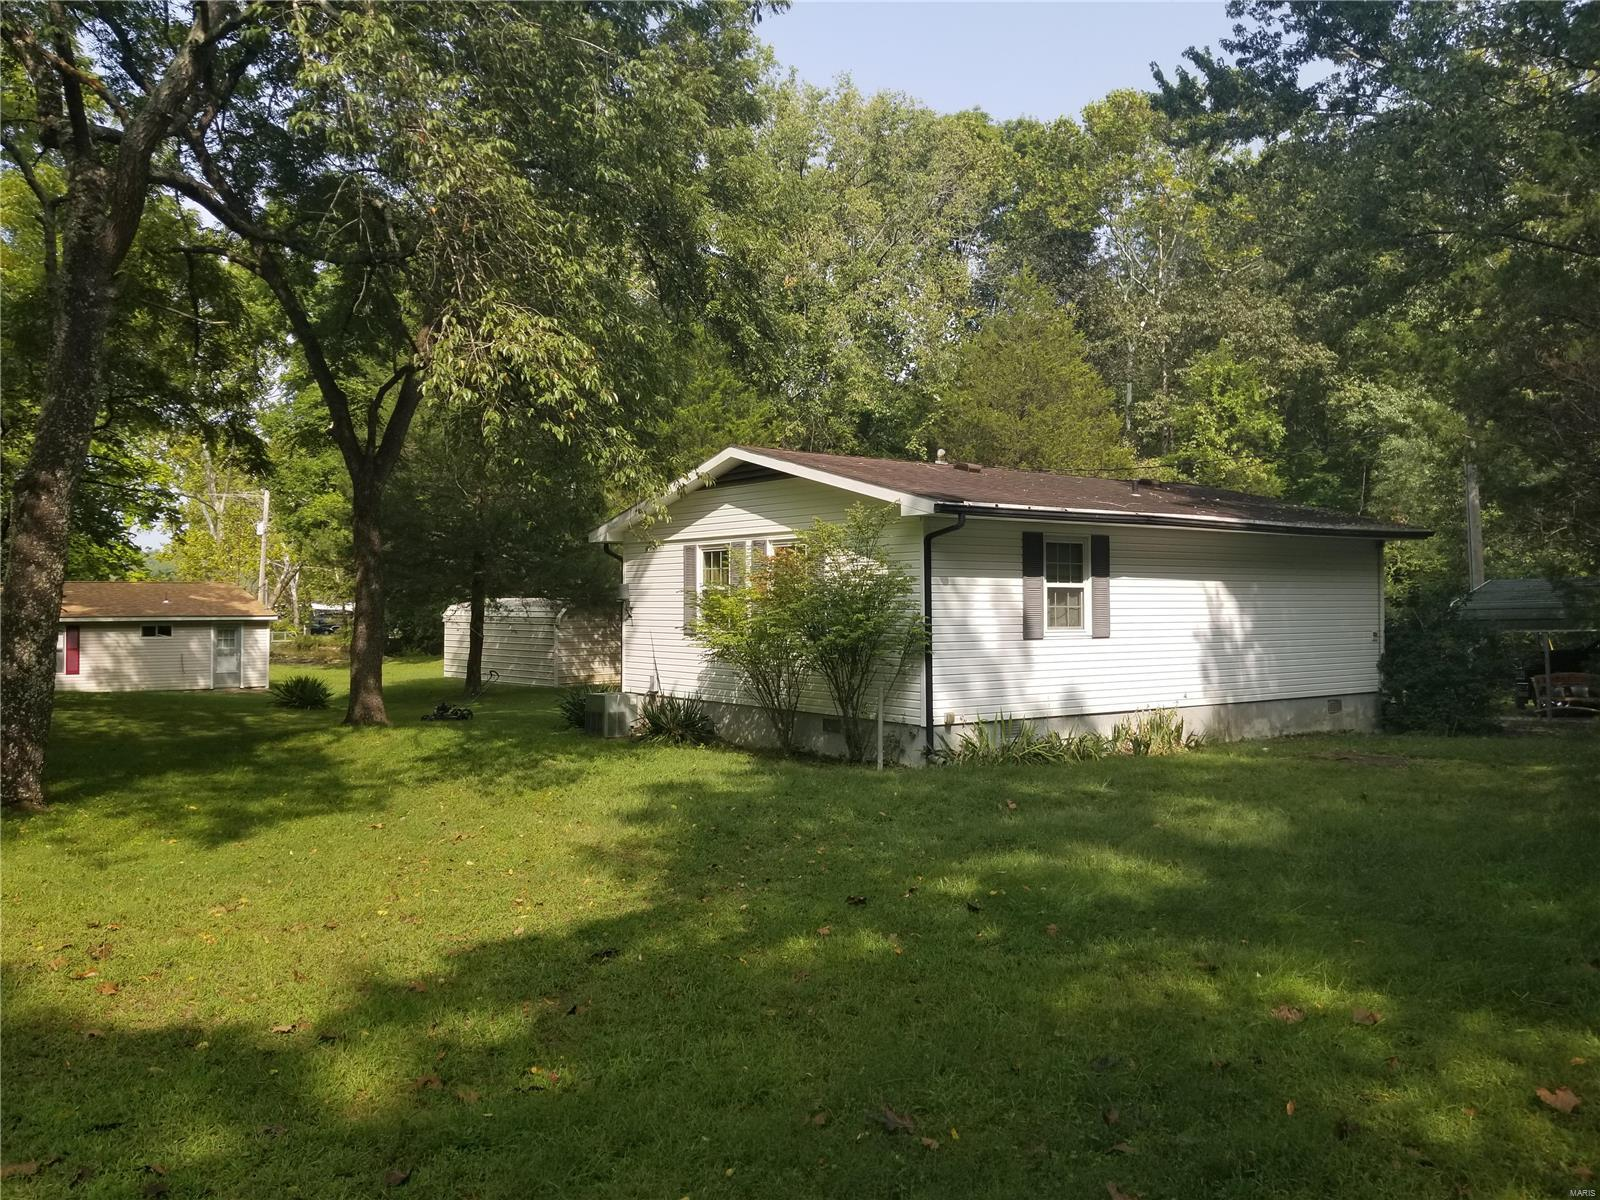 511 Anthony Cove Property Photo - Camdenton, MO real estate listing